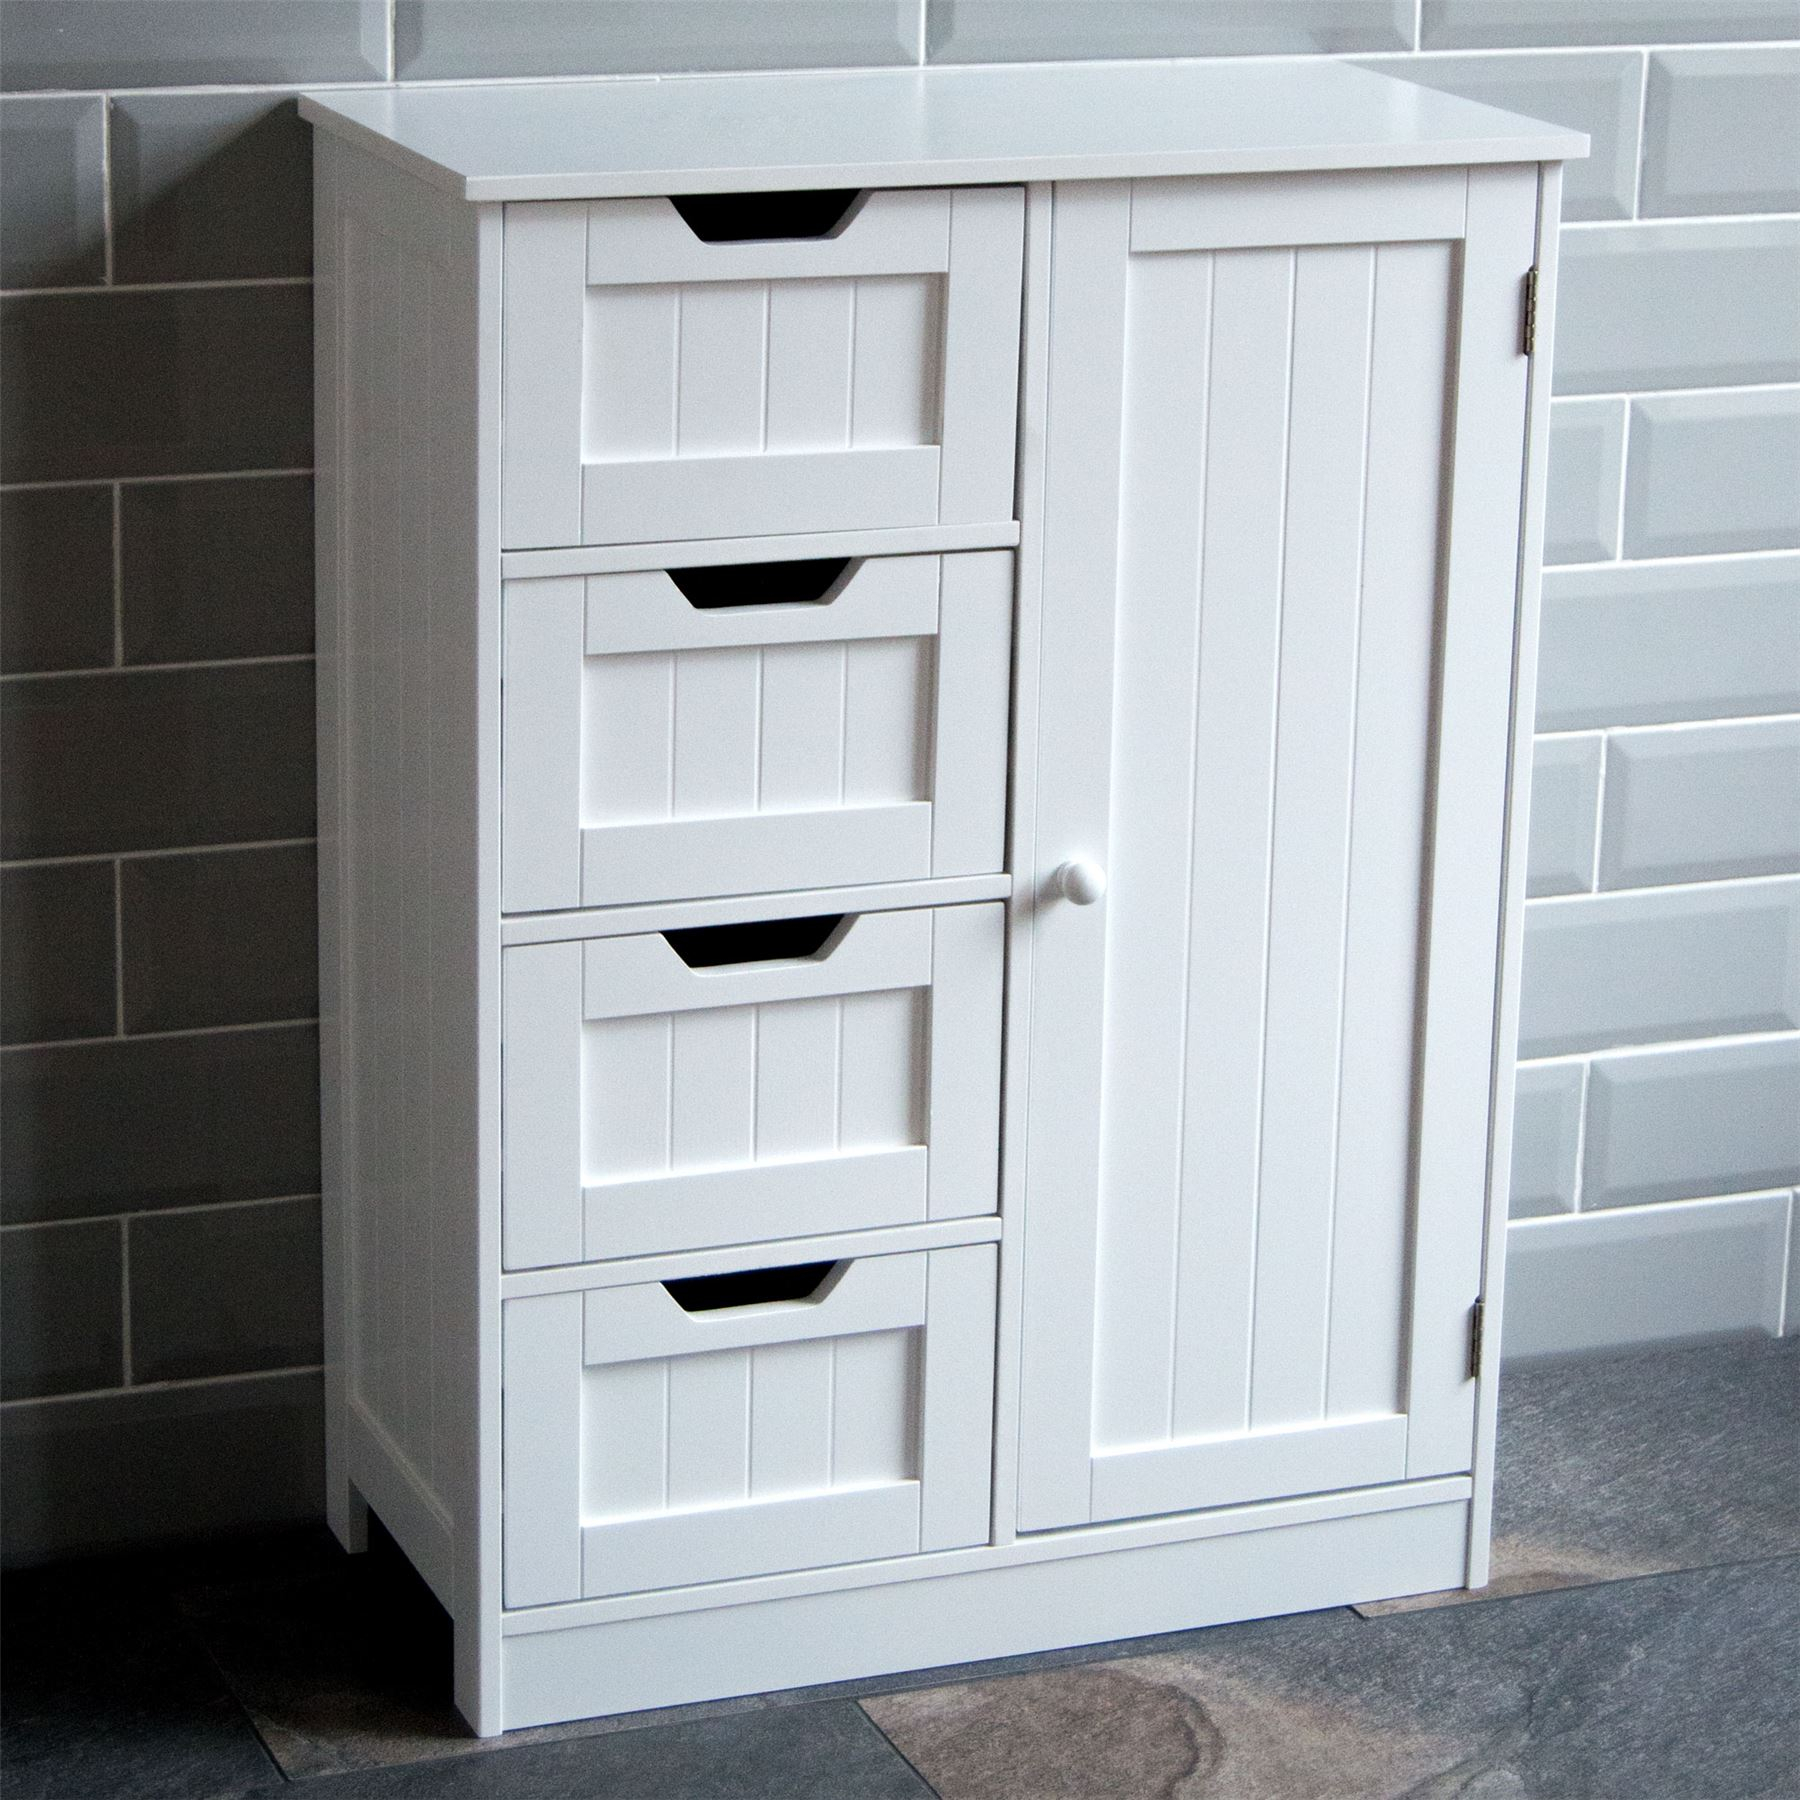 Details About Bathroom 4 Drawer Cabinet Door Storage Cupboard Wooden White Home Discount with regard to measurements 1800 X 1800